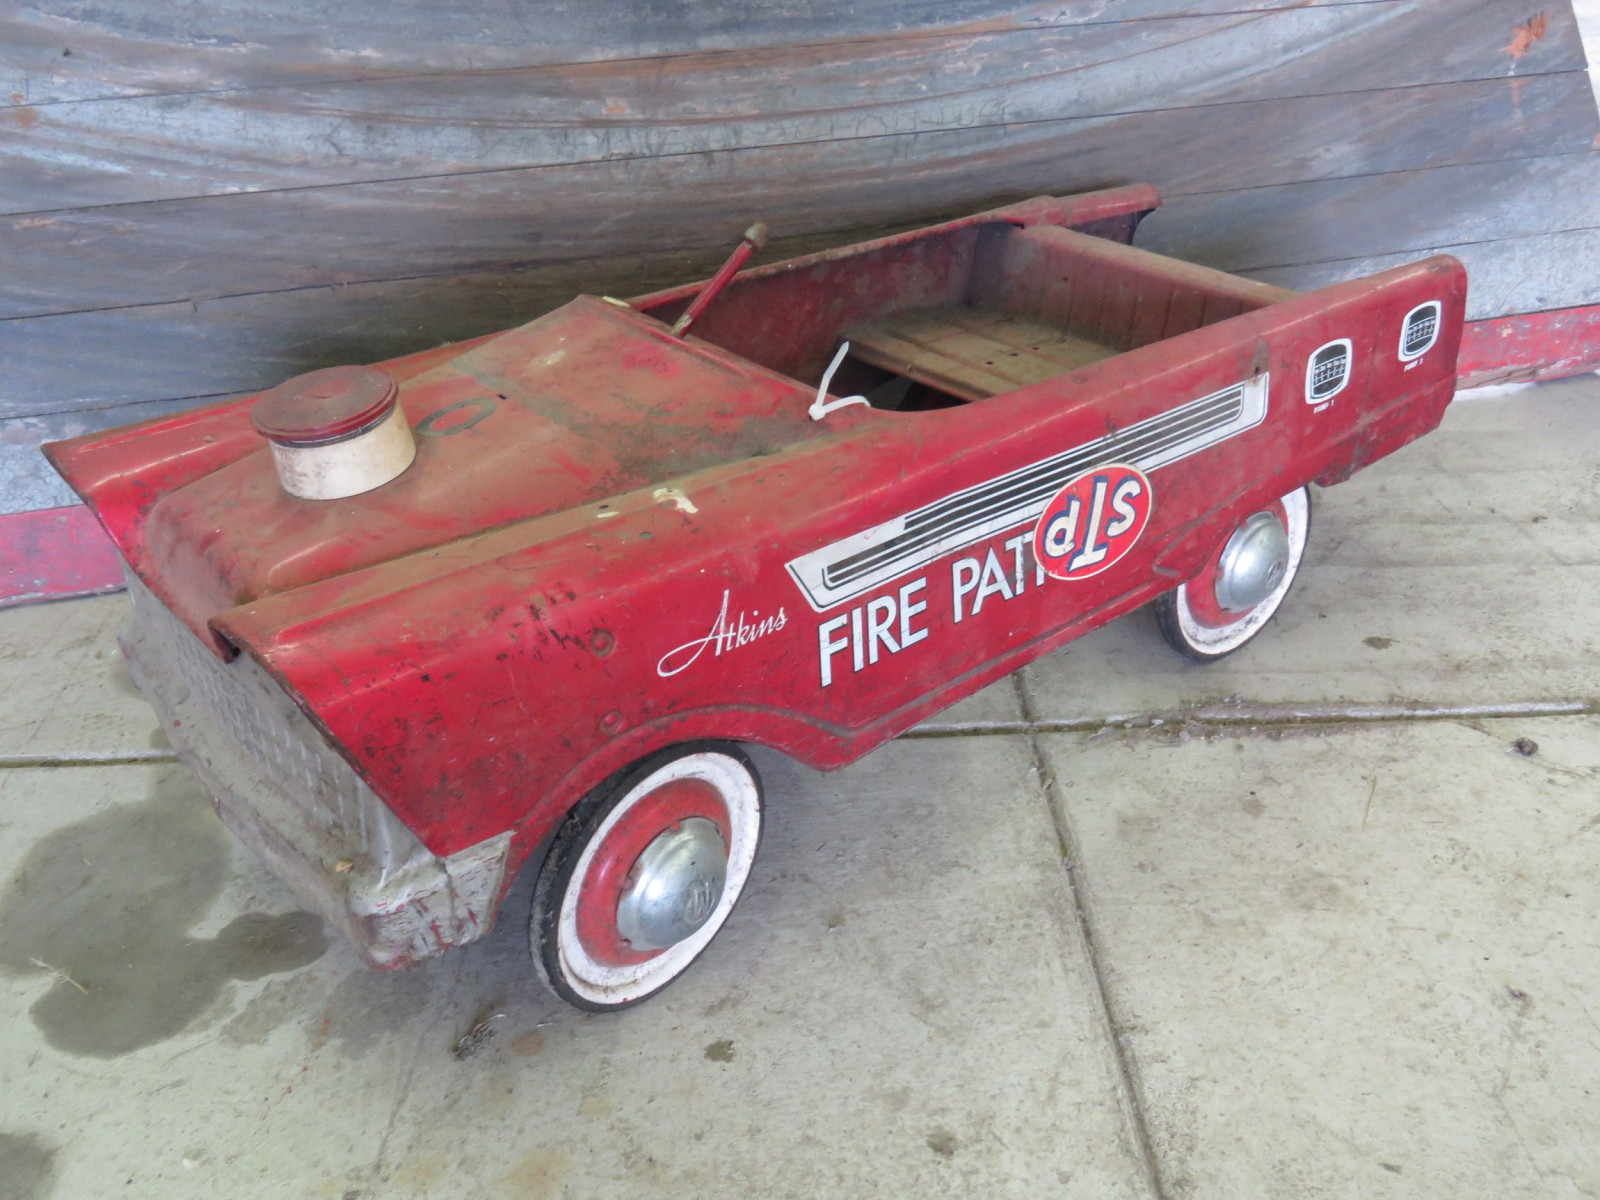 Murray Atkins Fire Chief Pedal Car for Restore - Image 1